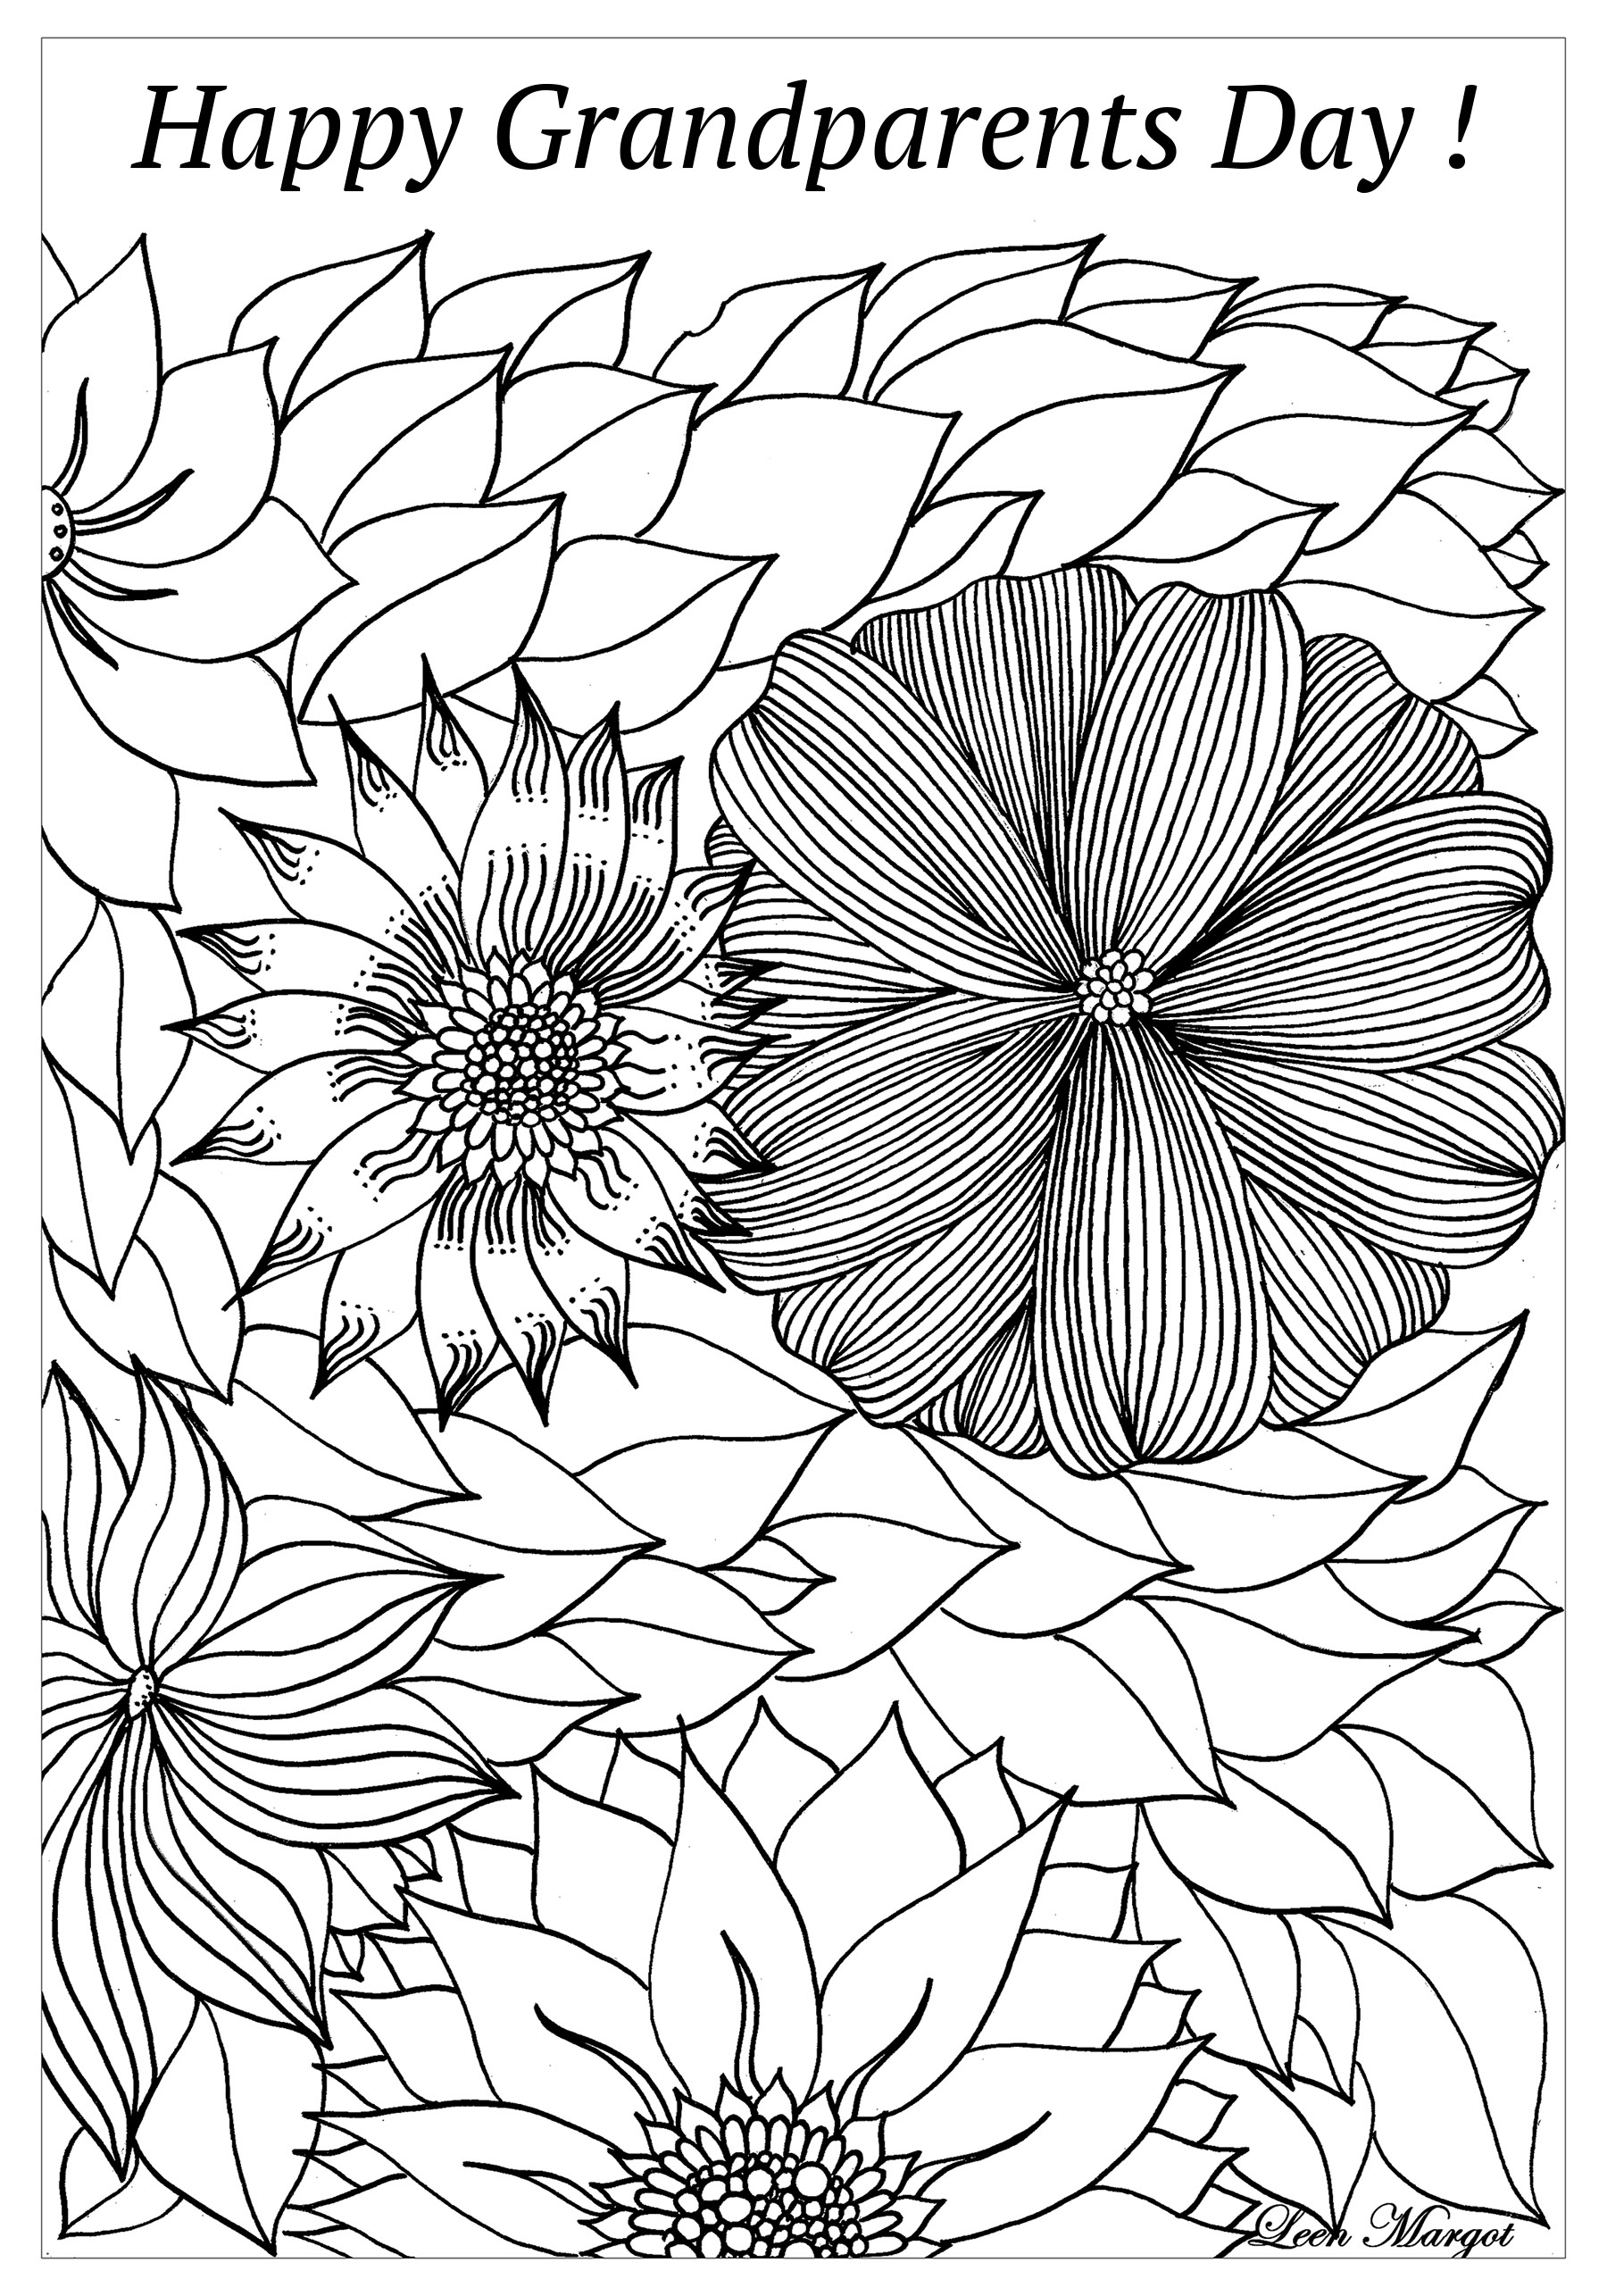 - Complex Happy Grandparents Day - Grandparents Day Adult Coloring Pages